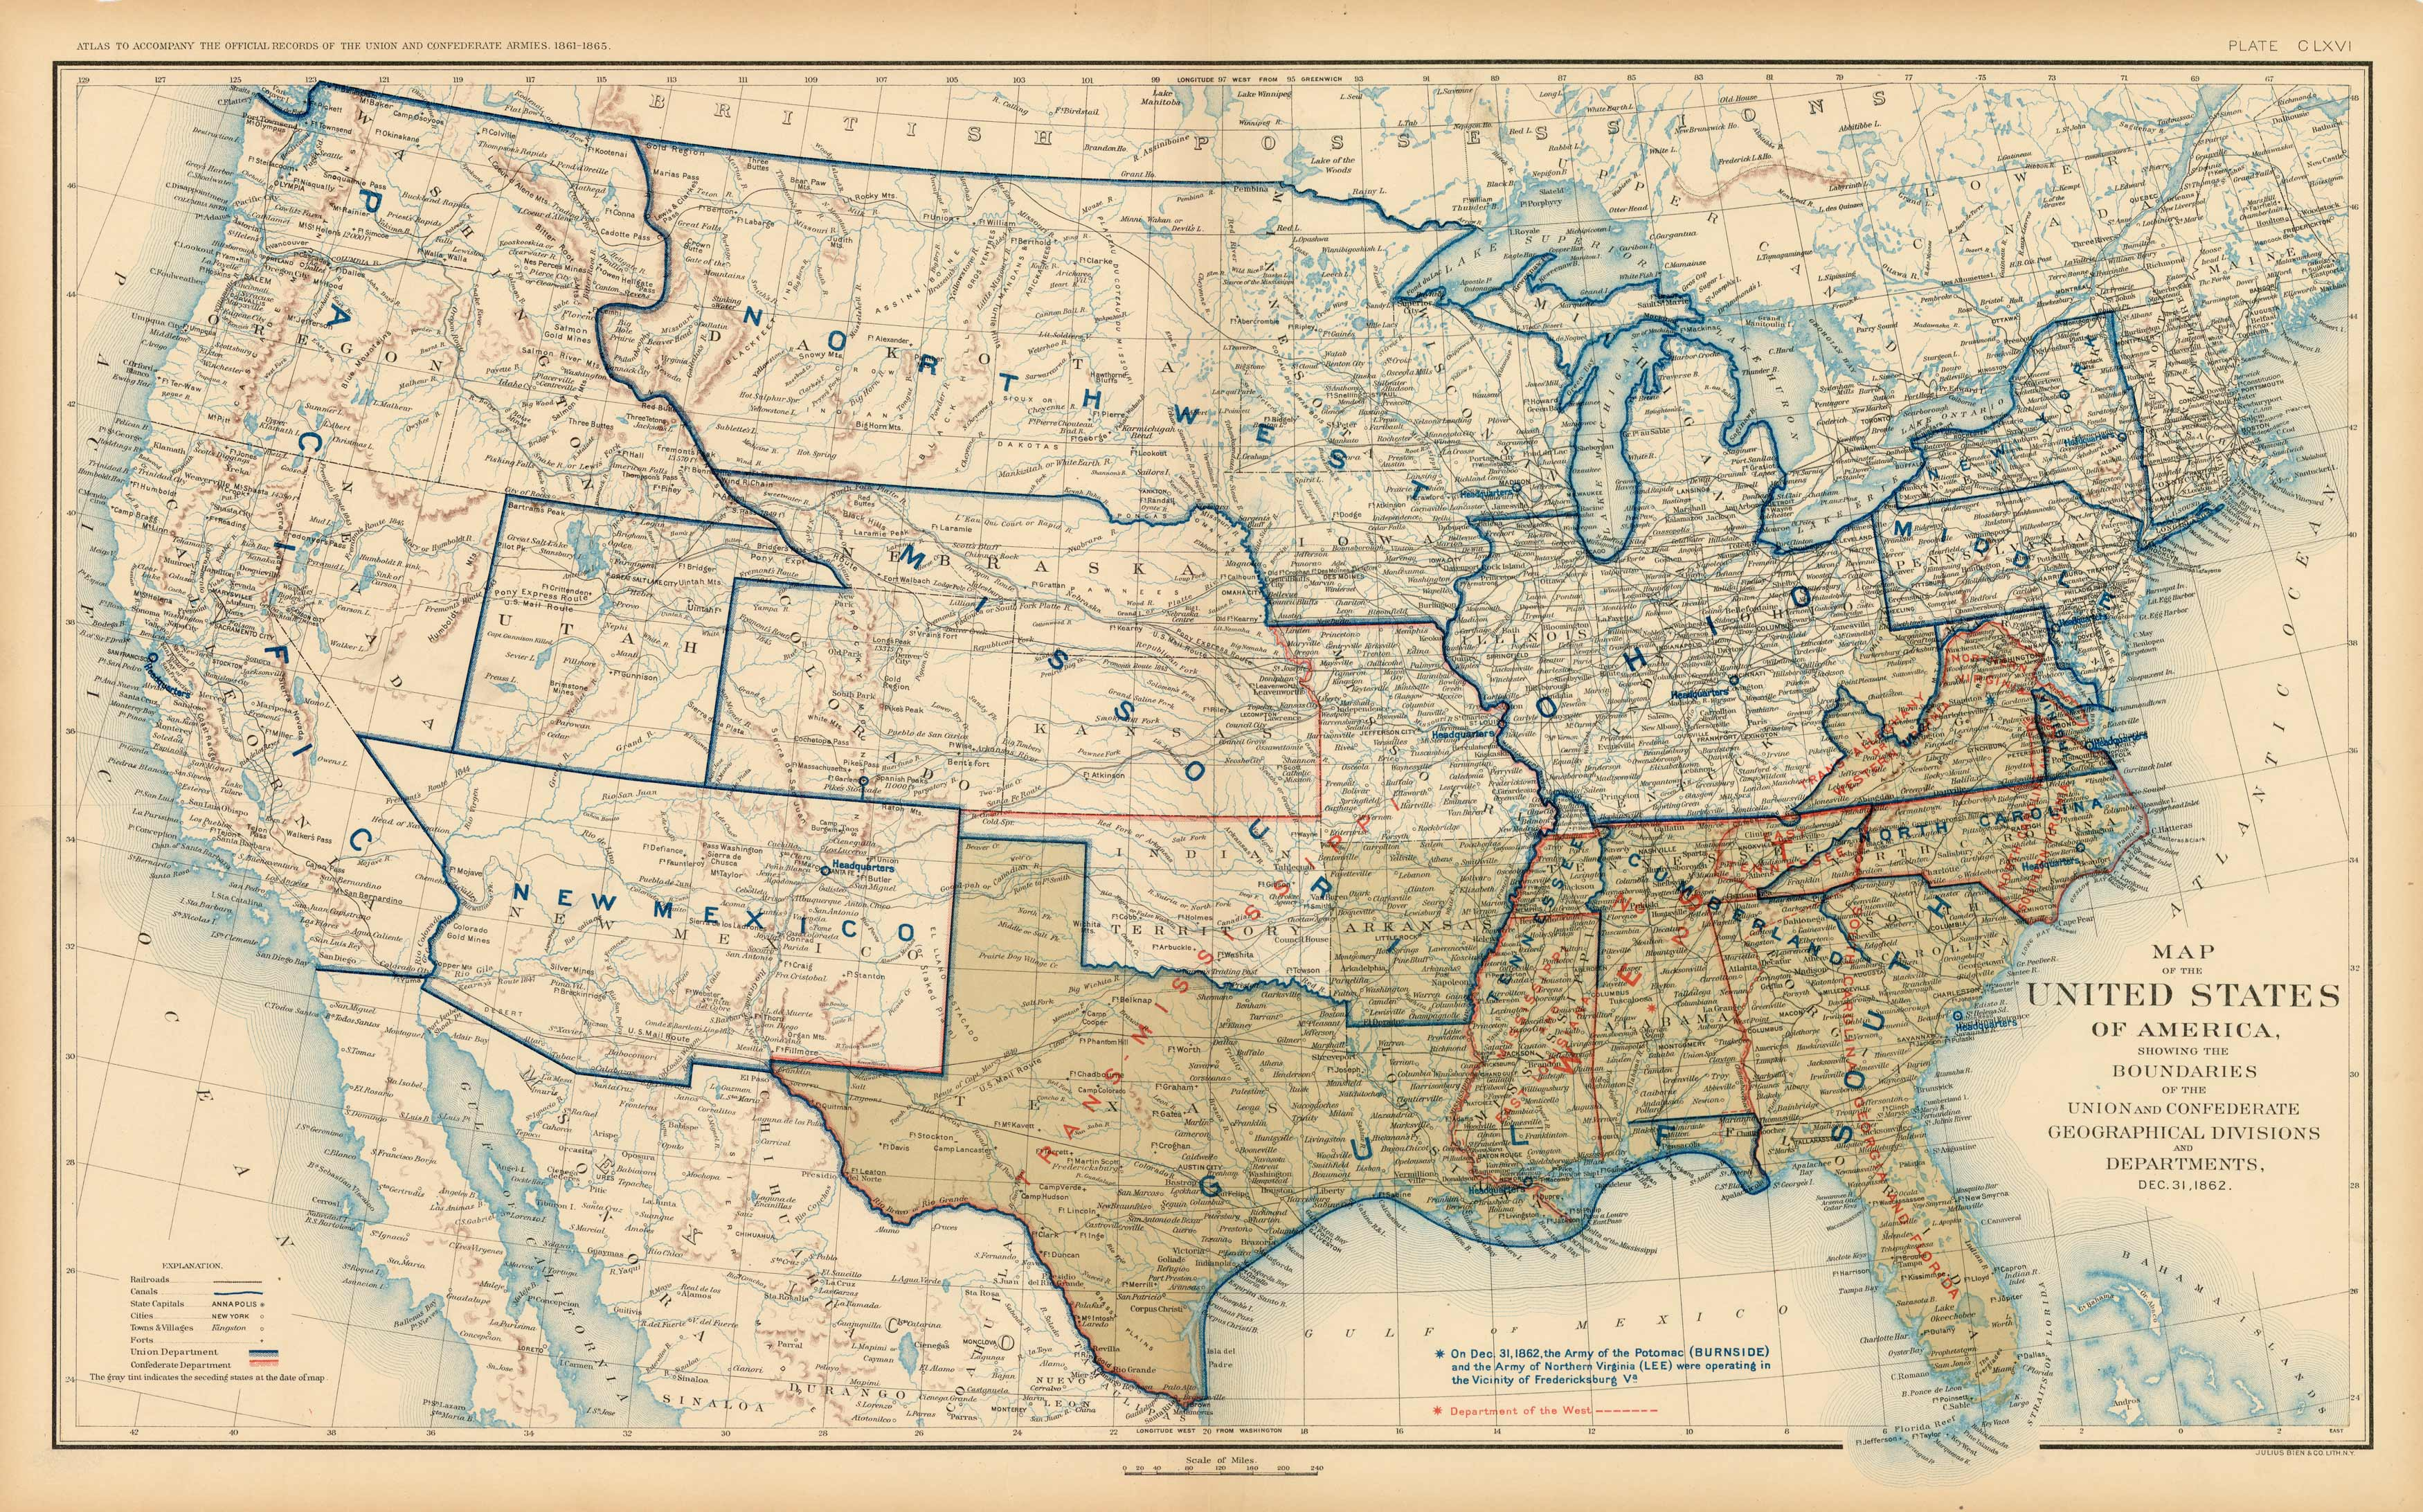 Civil War Atlas; Plate 166; Map of the United States of America Showing the  Boundaries of the Union and Confederate Geographical Divisions and ...